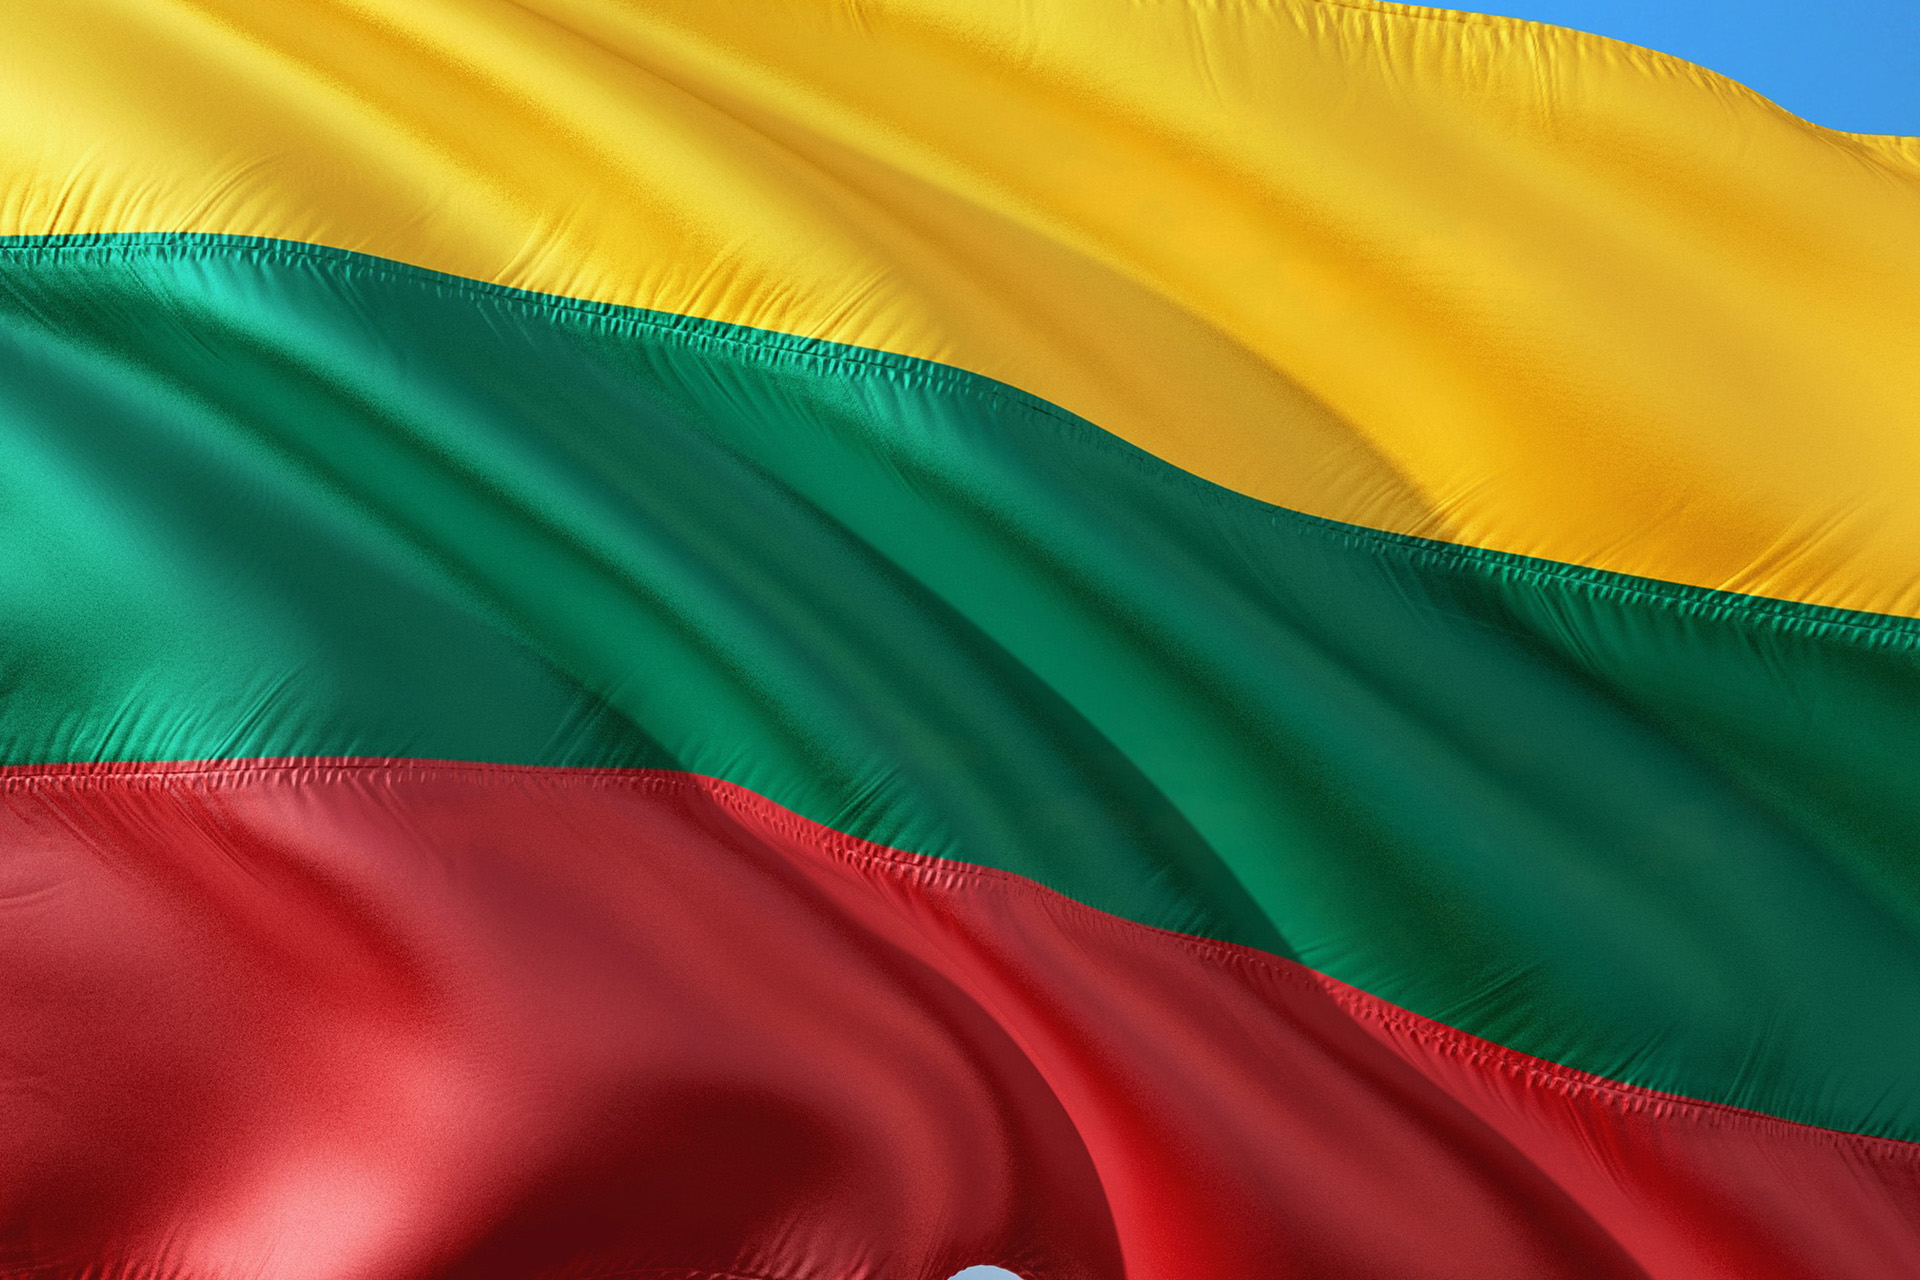 lithuaniaFlag